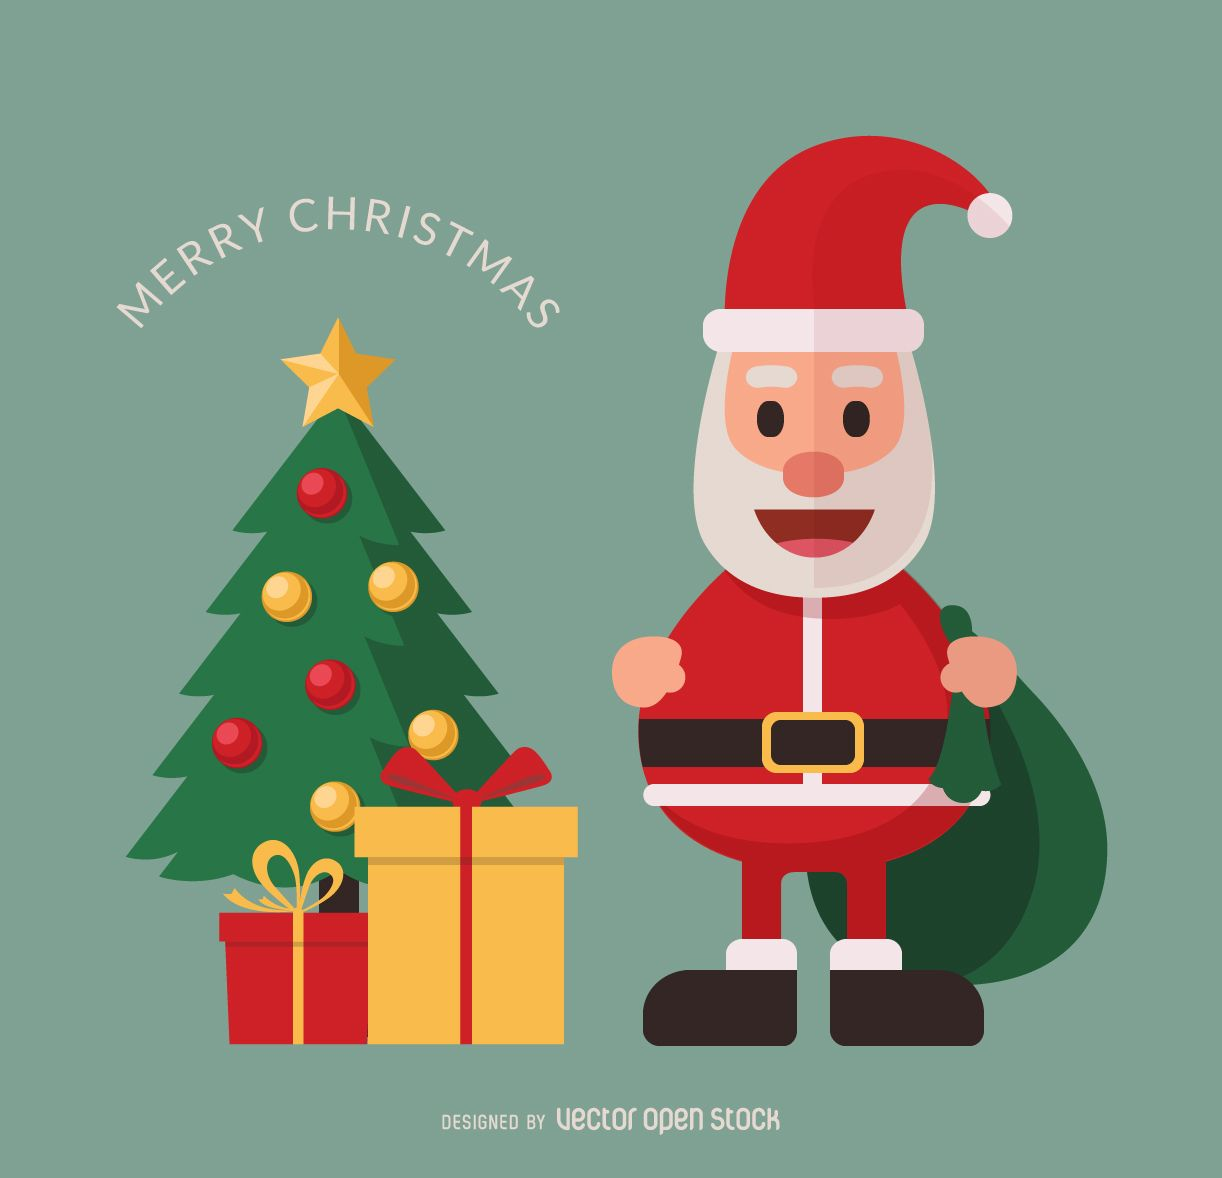 Flat Santa Claus Illustration Featuring A Christmas Tree And Gift